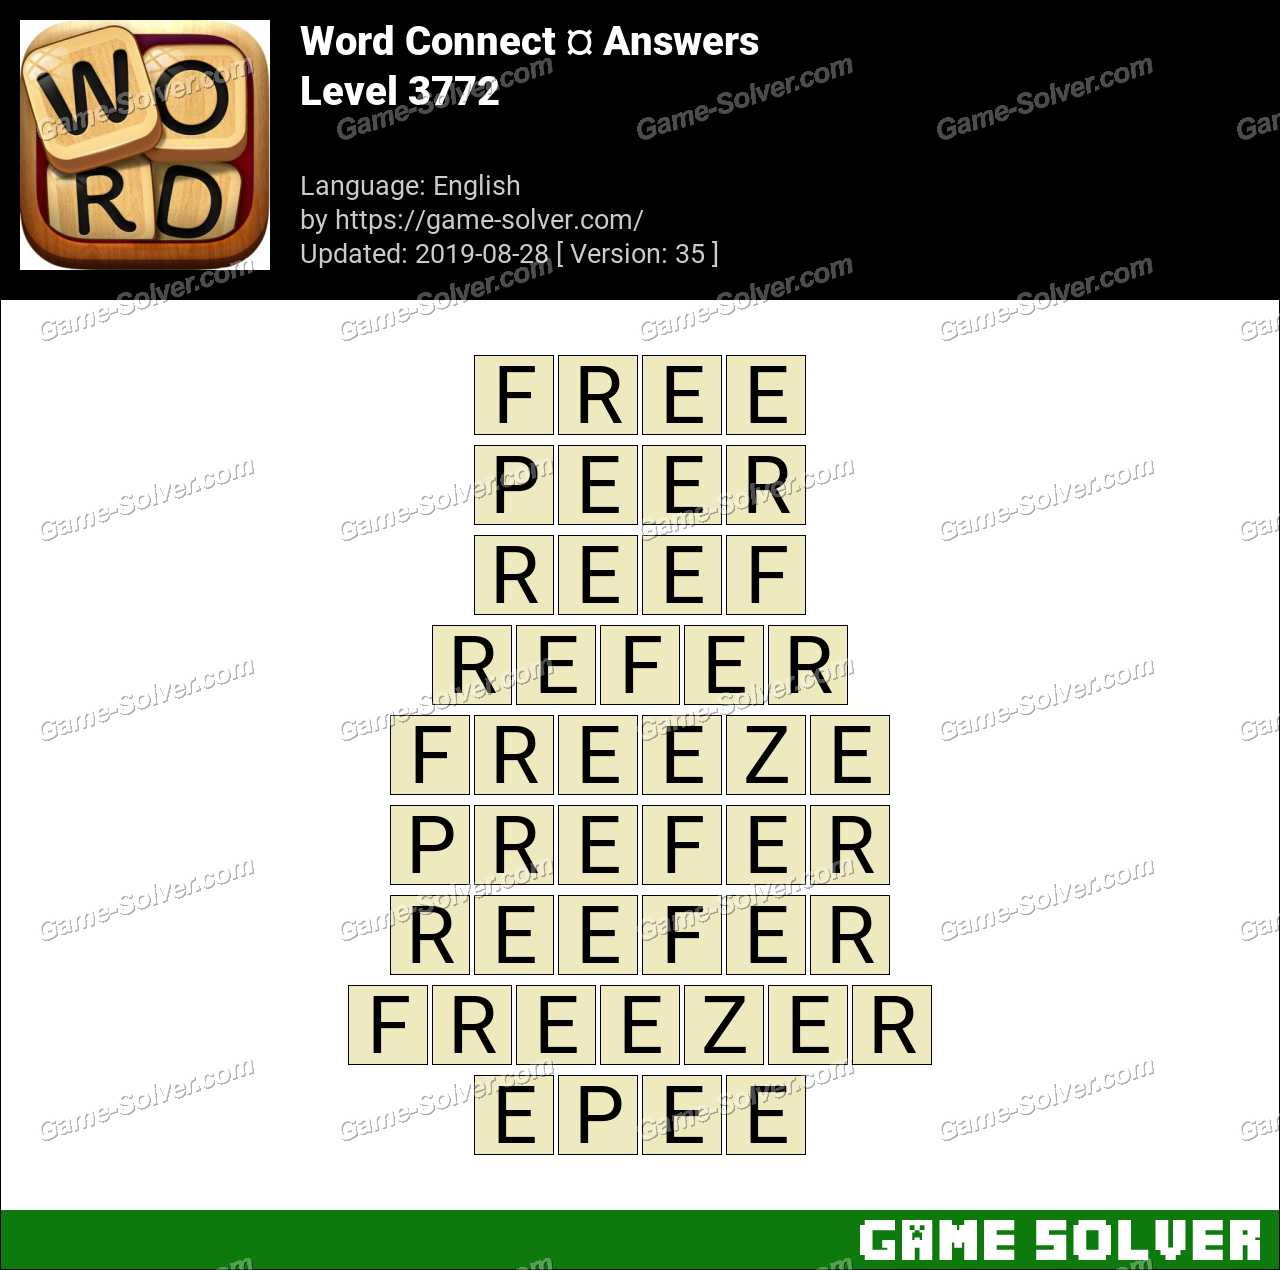 Word Connect Level 3772 Answers